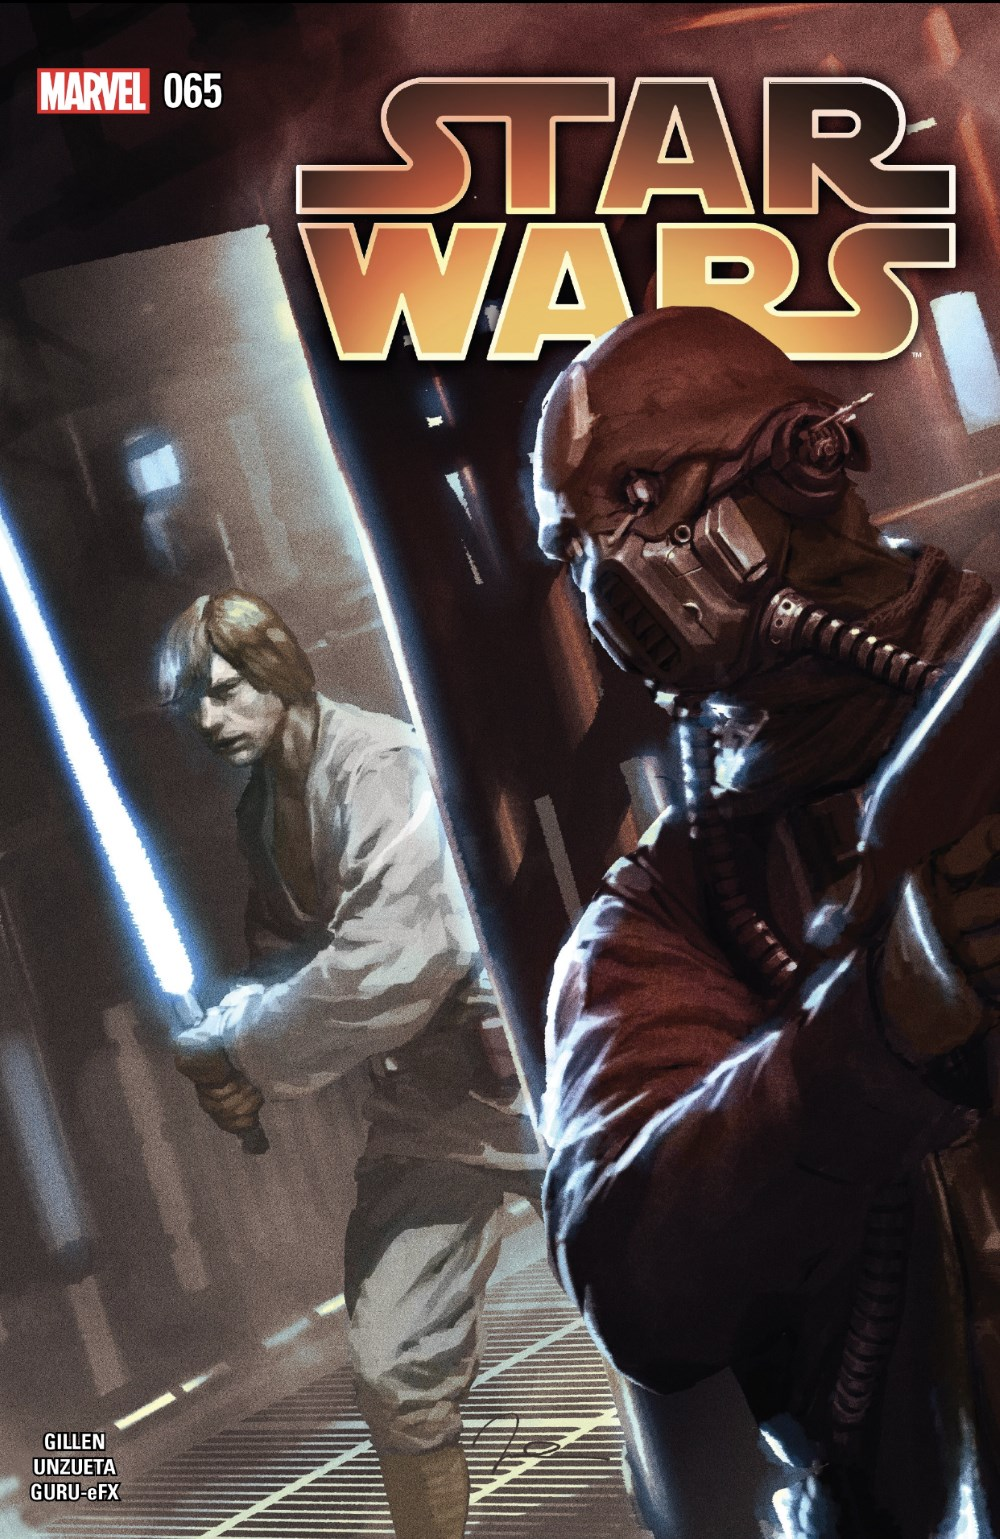 Star Wars #65 Cover